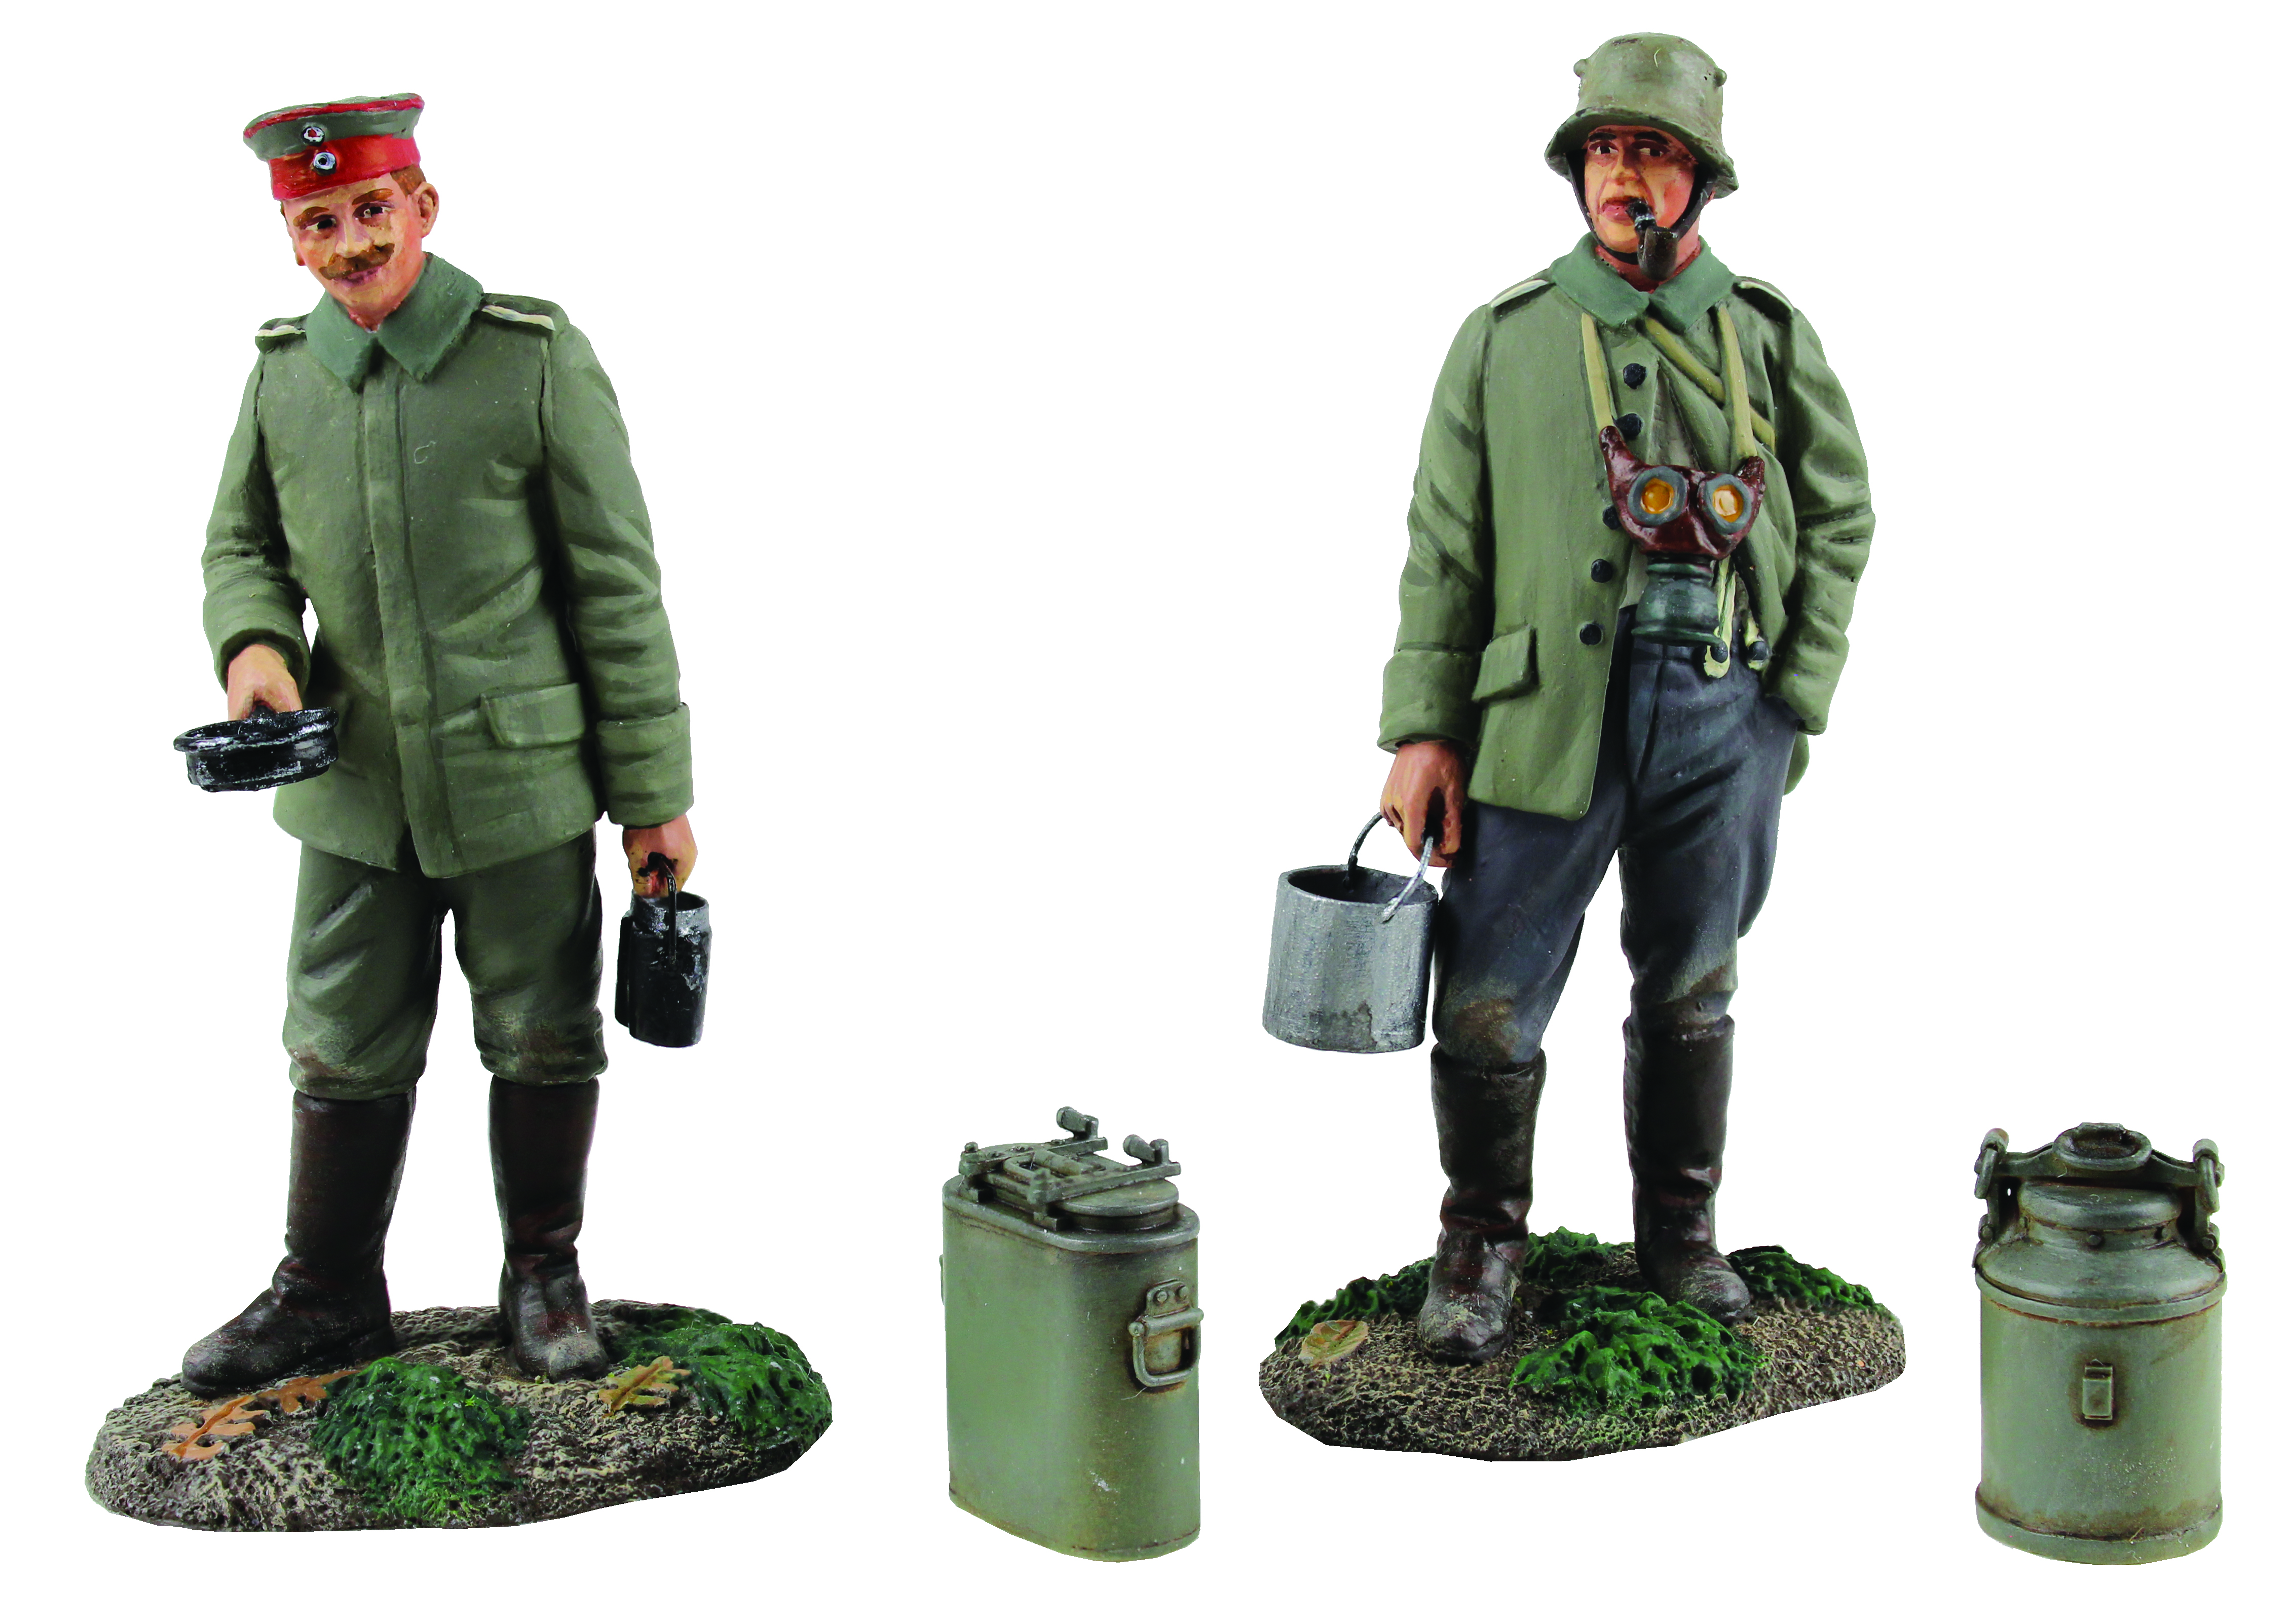 """""""Whats on the Menu Tonight?"""" German Infantrymen with Mess Equipment - 4 Piece Set Limited Edition of 400 Sets"""